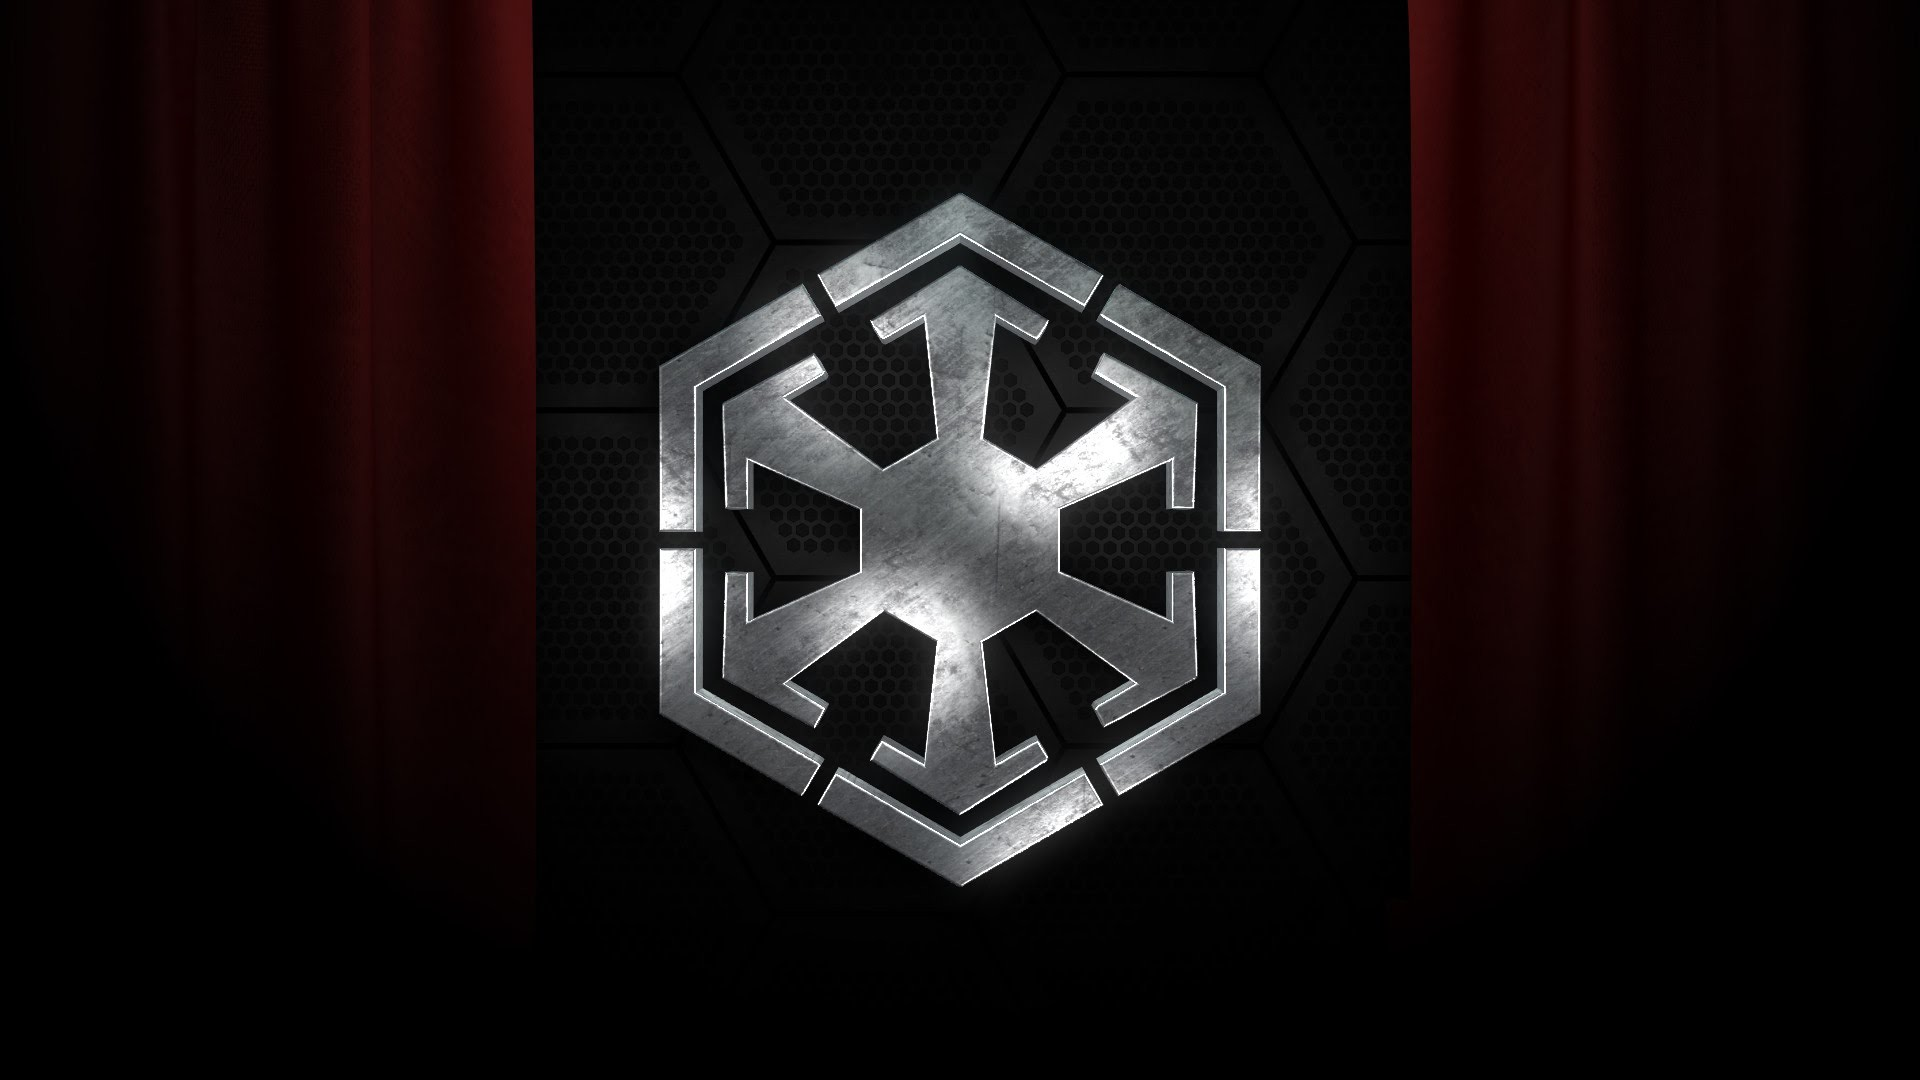 Empire Logo Wallpaper Posted By Ethan Anderson